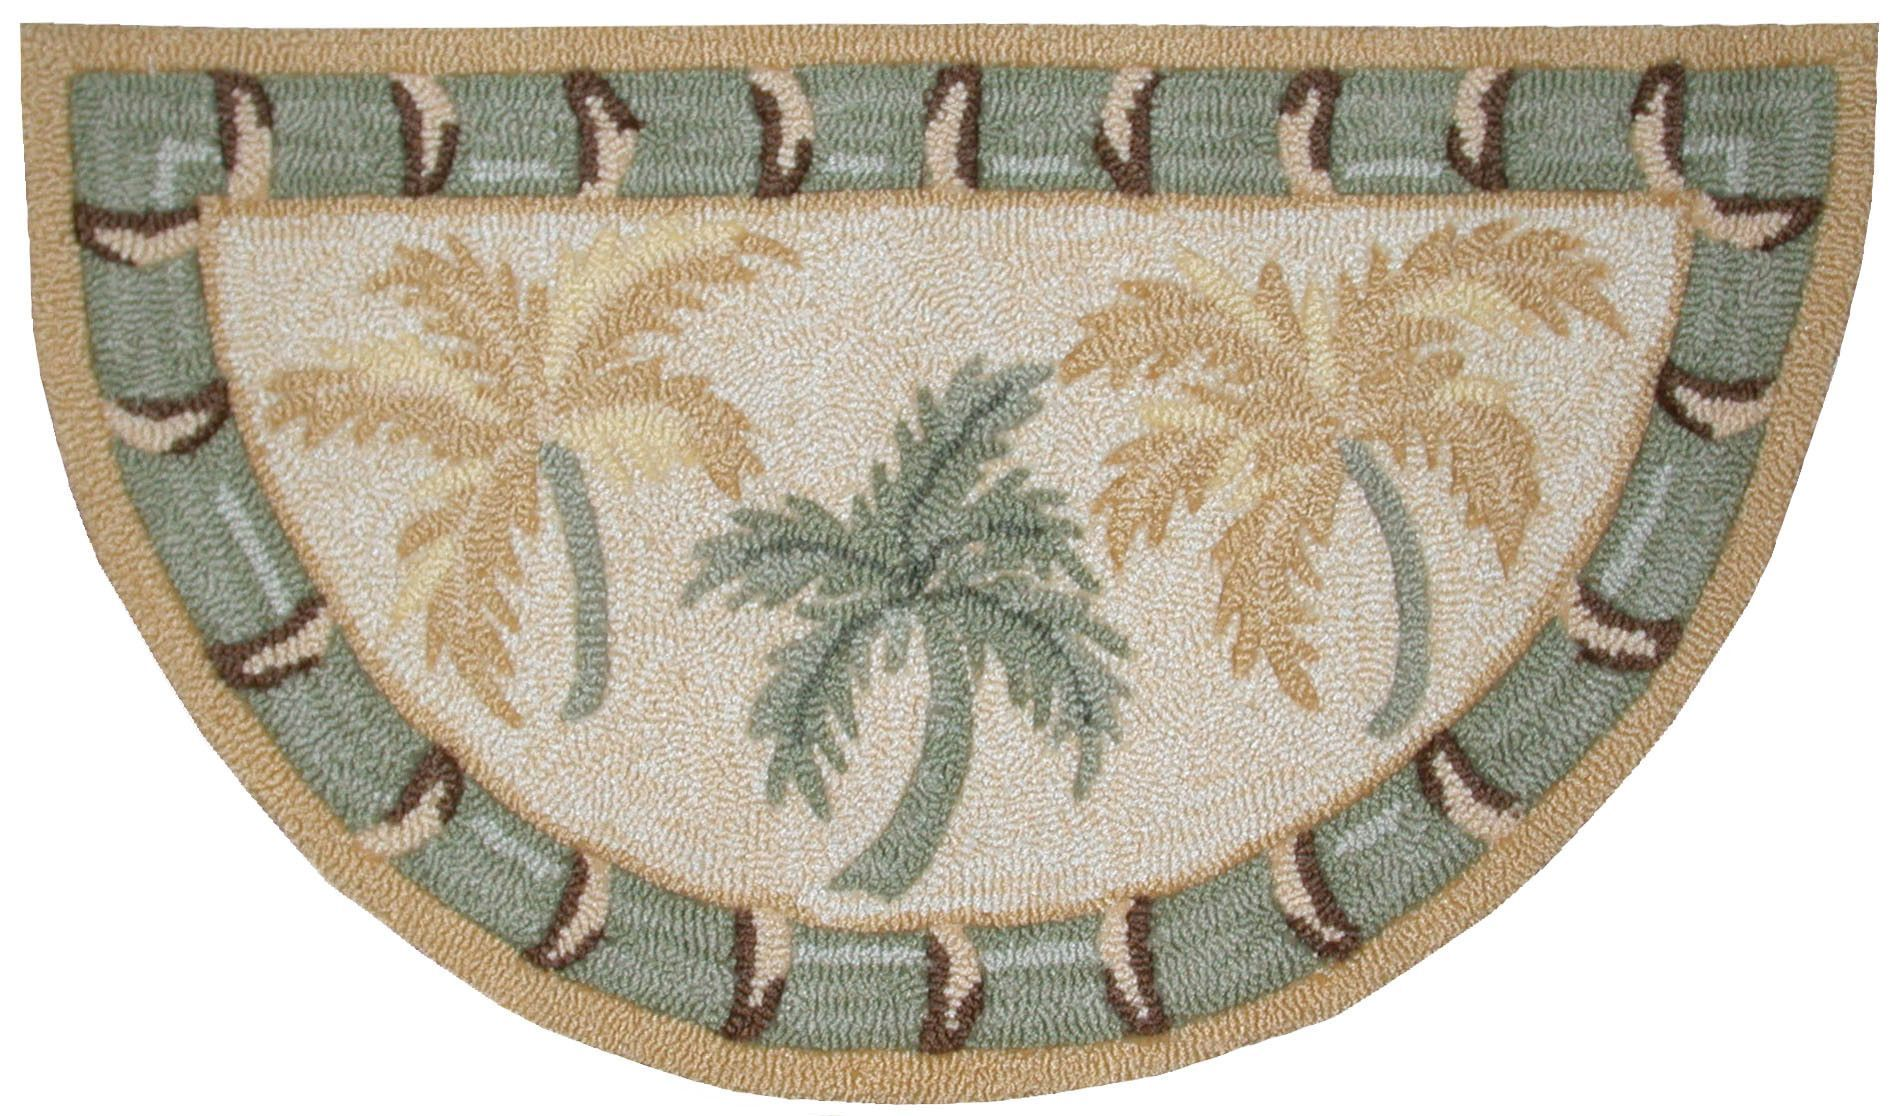 Everywhere Beige Quot Palm Tree Quot Area Rug Area Rugs Beige